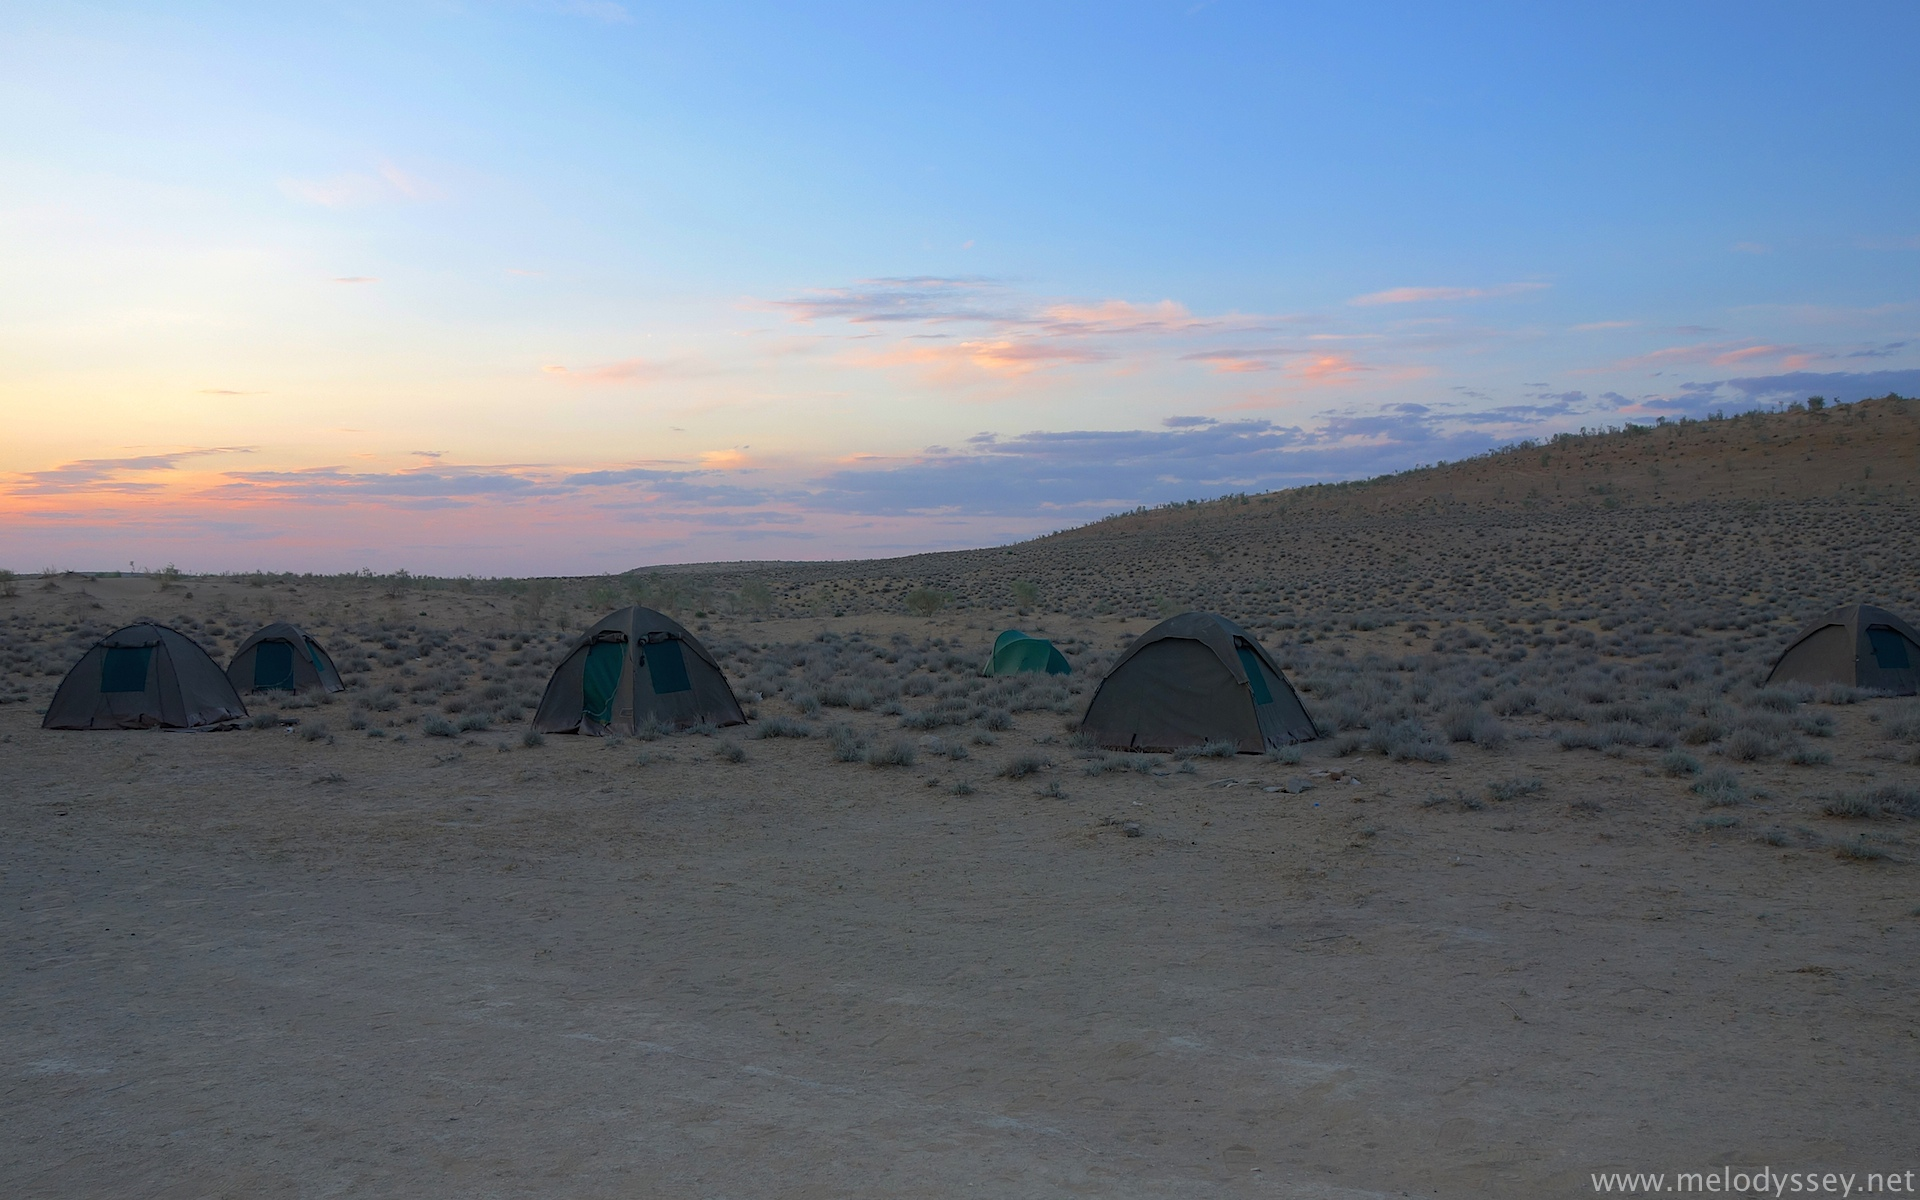 camping-tents-in-the-dessert-turkmenistan